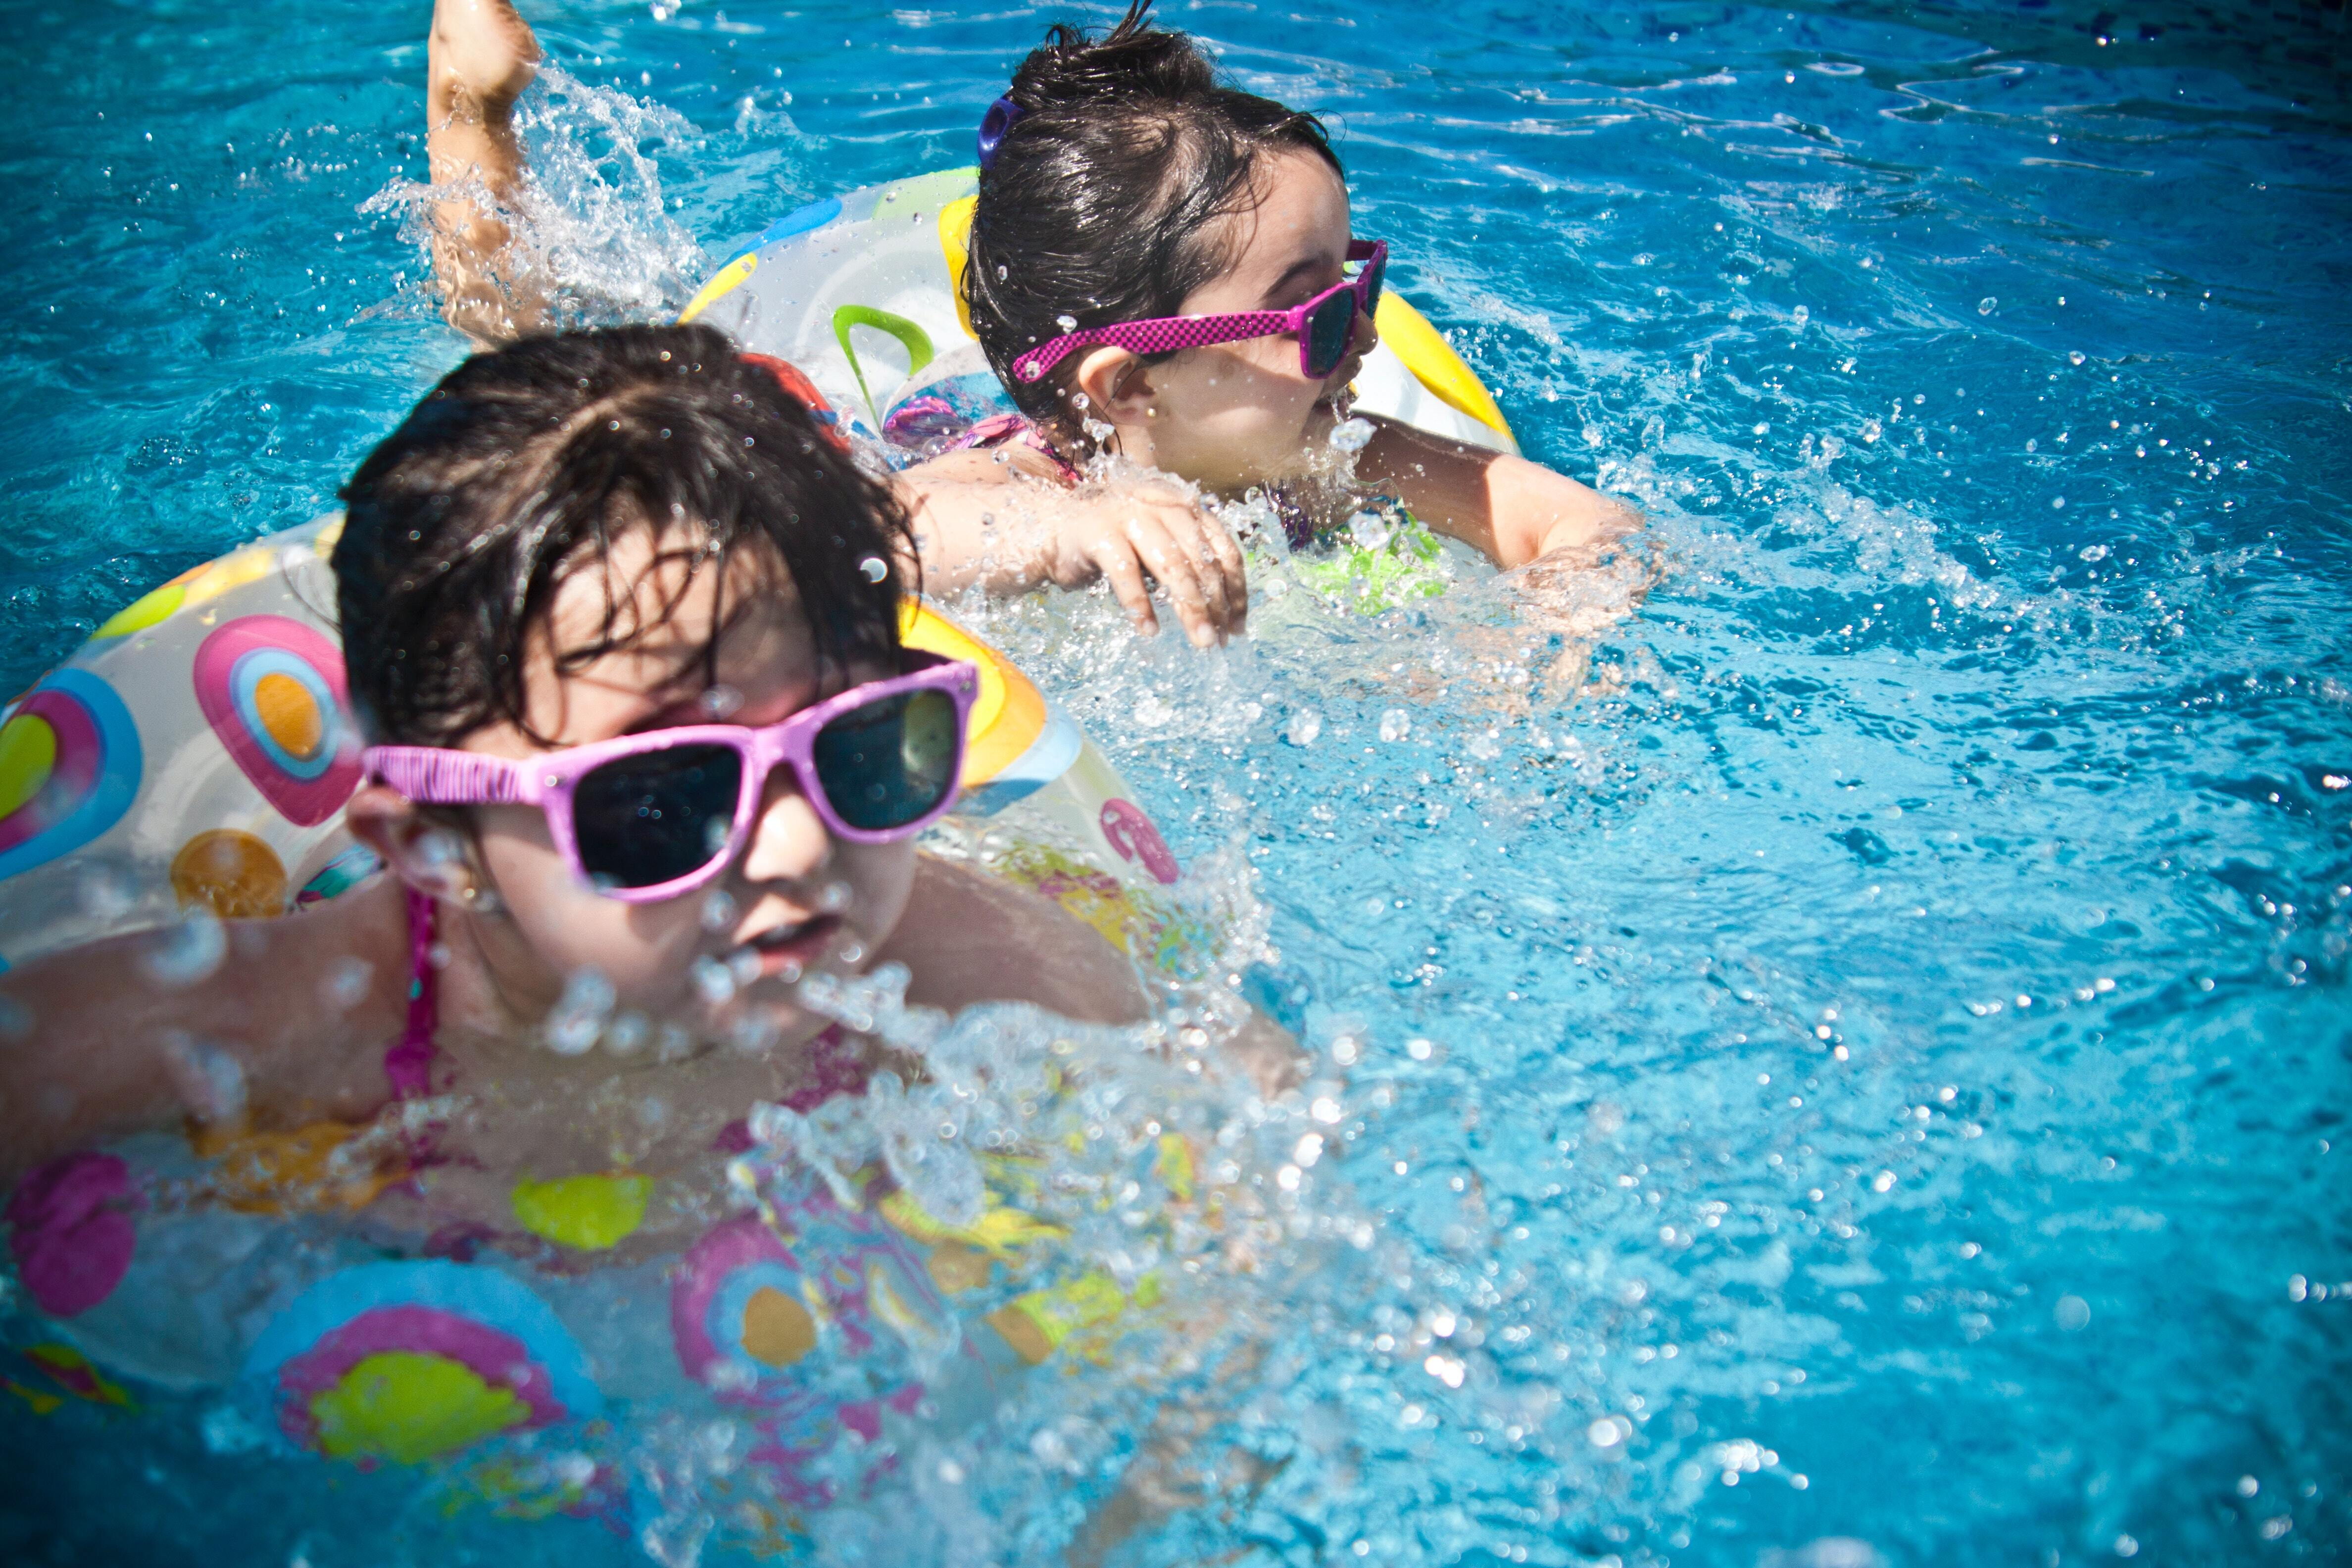 How to have a safe and fun pool party